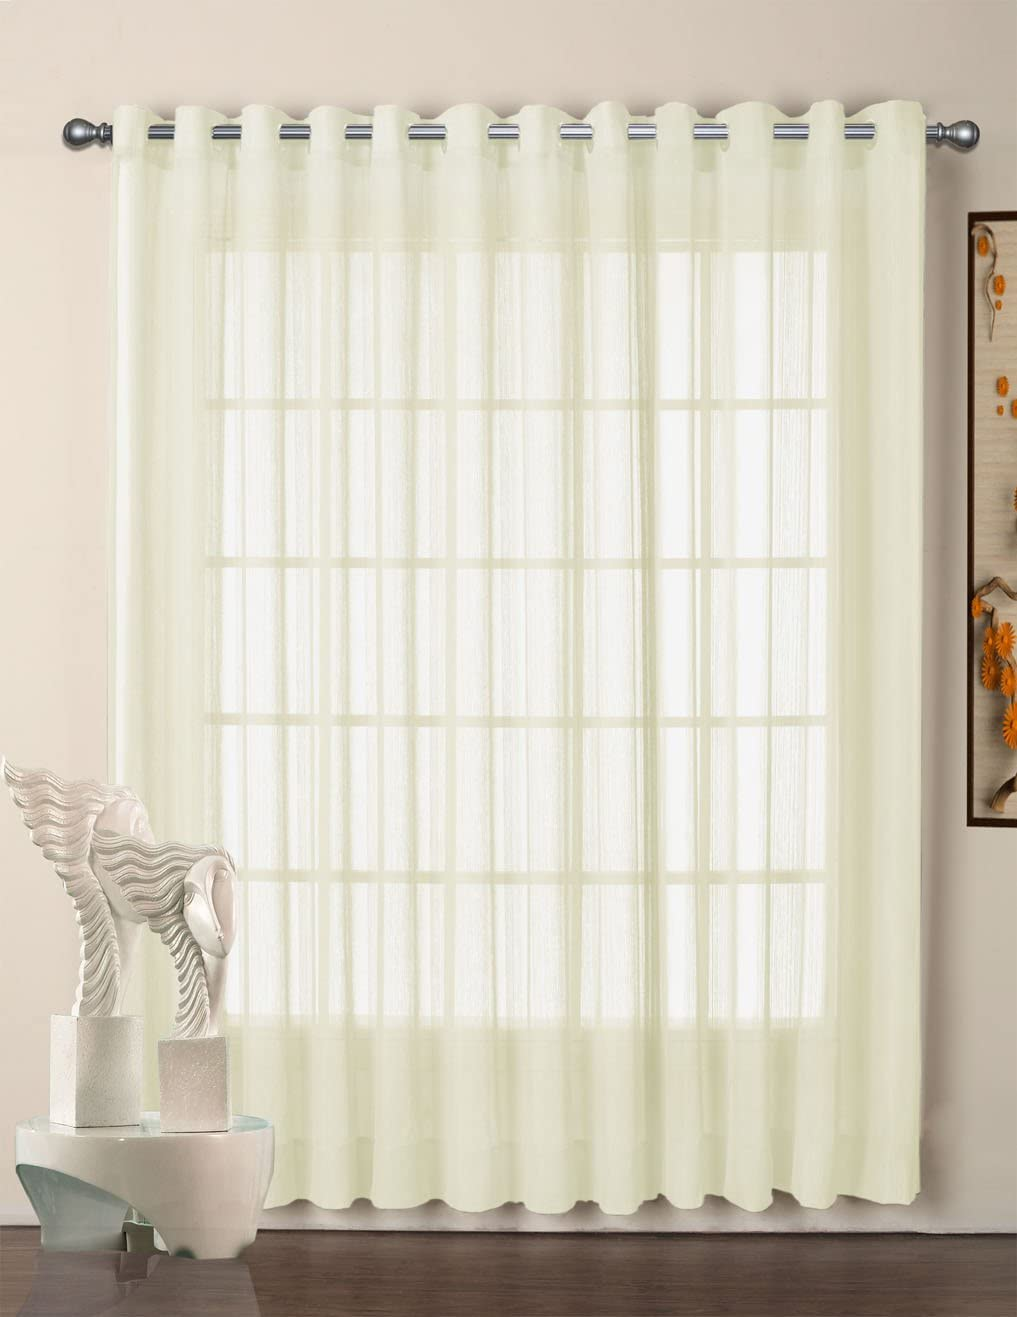 R.LANG Grommet Top Sheer Curtains Voile Window Panel 1 Pair Light Beige W52 x L108 Set of 2 Panels